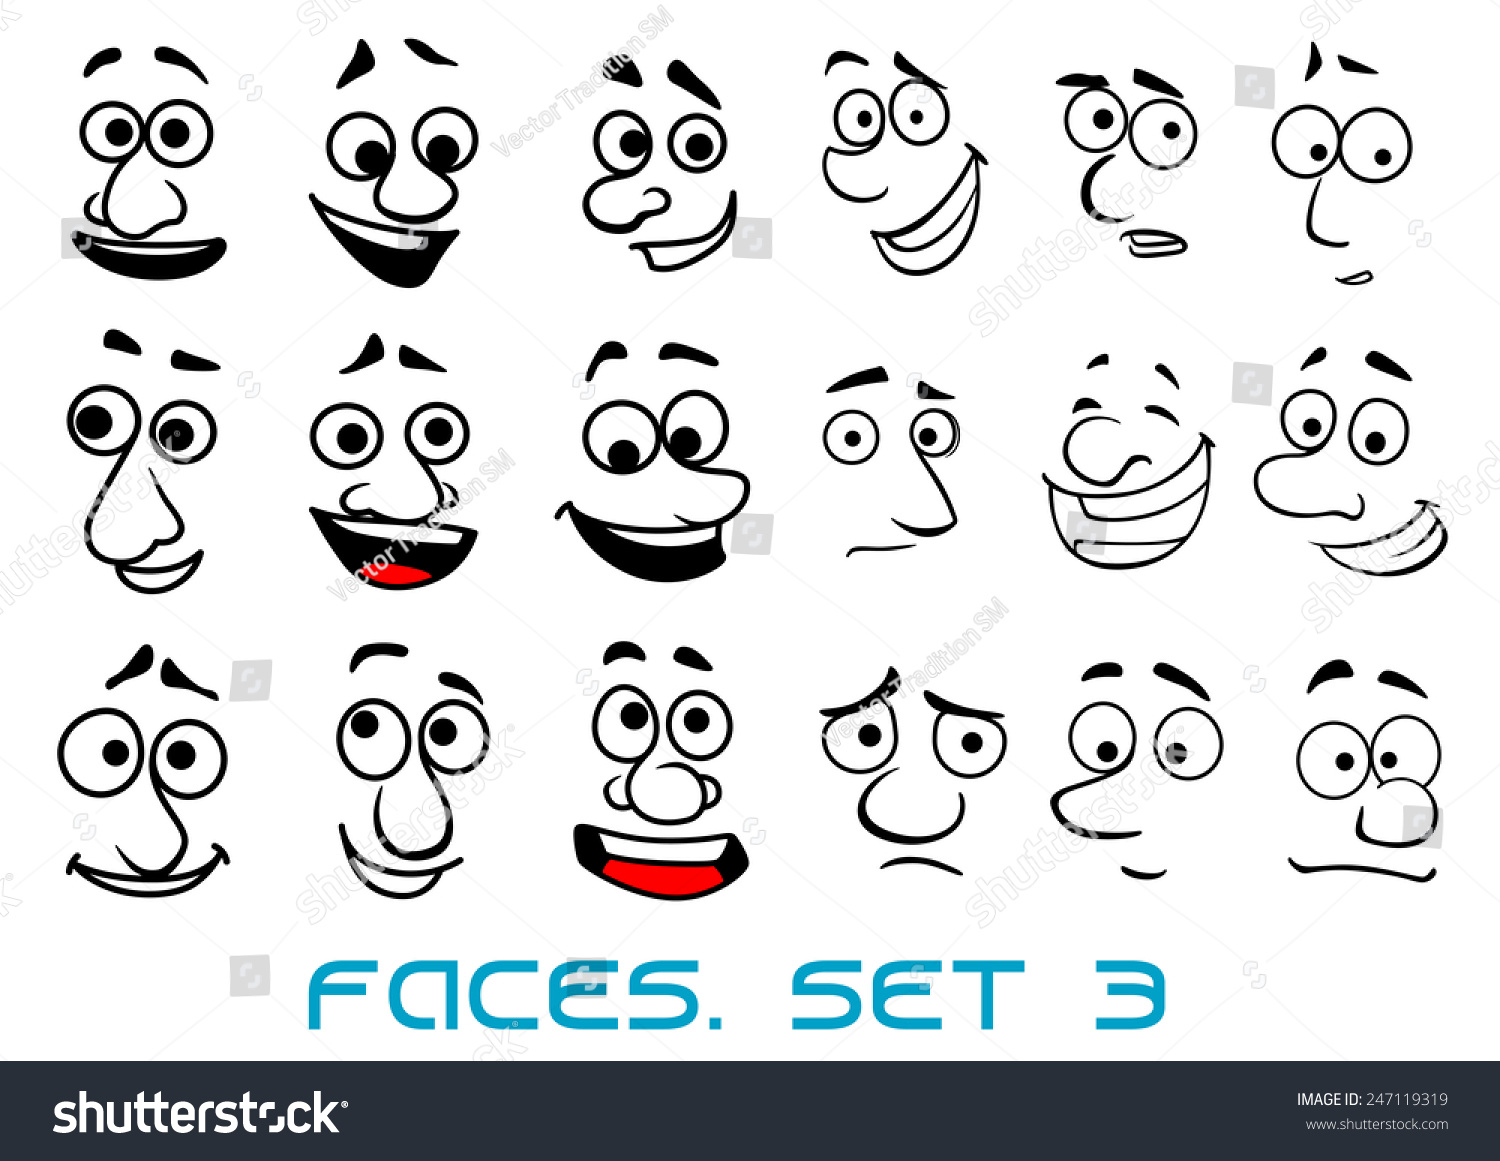 1500x1161 Funny Faces Cartoons For Sketches